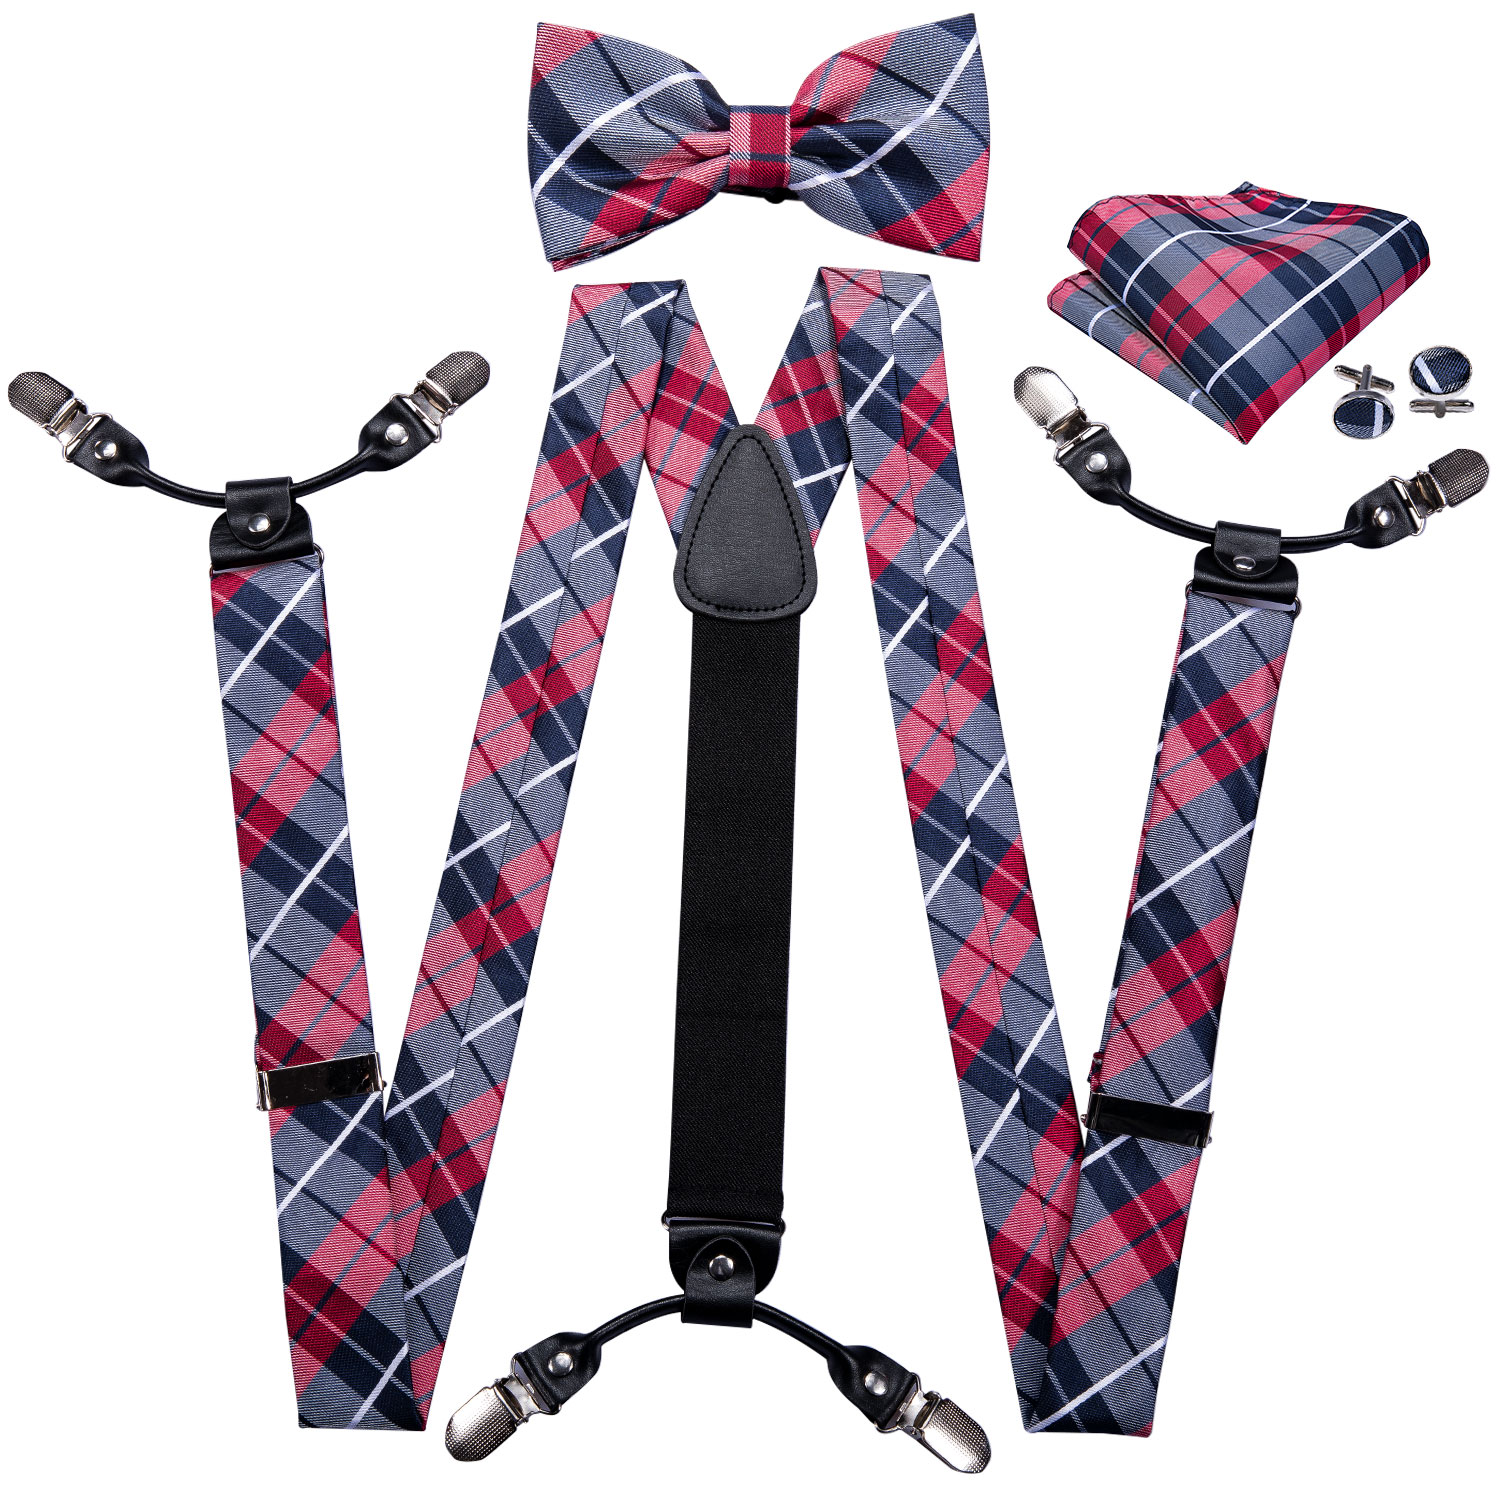 Barry.Wang Men Silk Suspenders Set Leather Metal 6 Clips Braces Black Plaid Vintage Elastic Wedding Suspenders Checked Bowtie